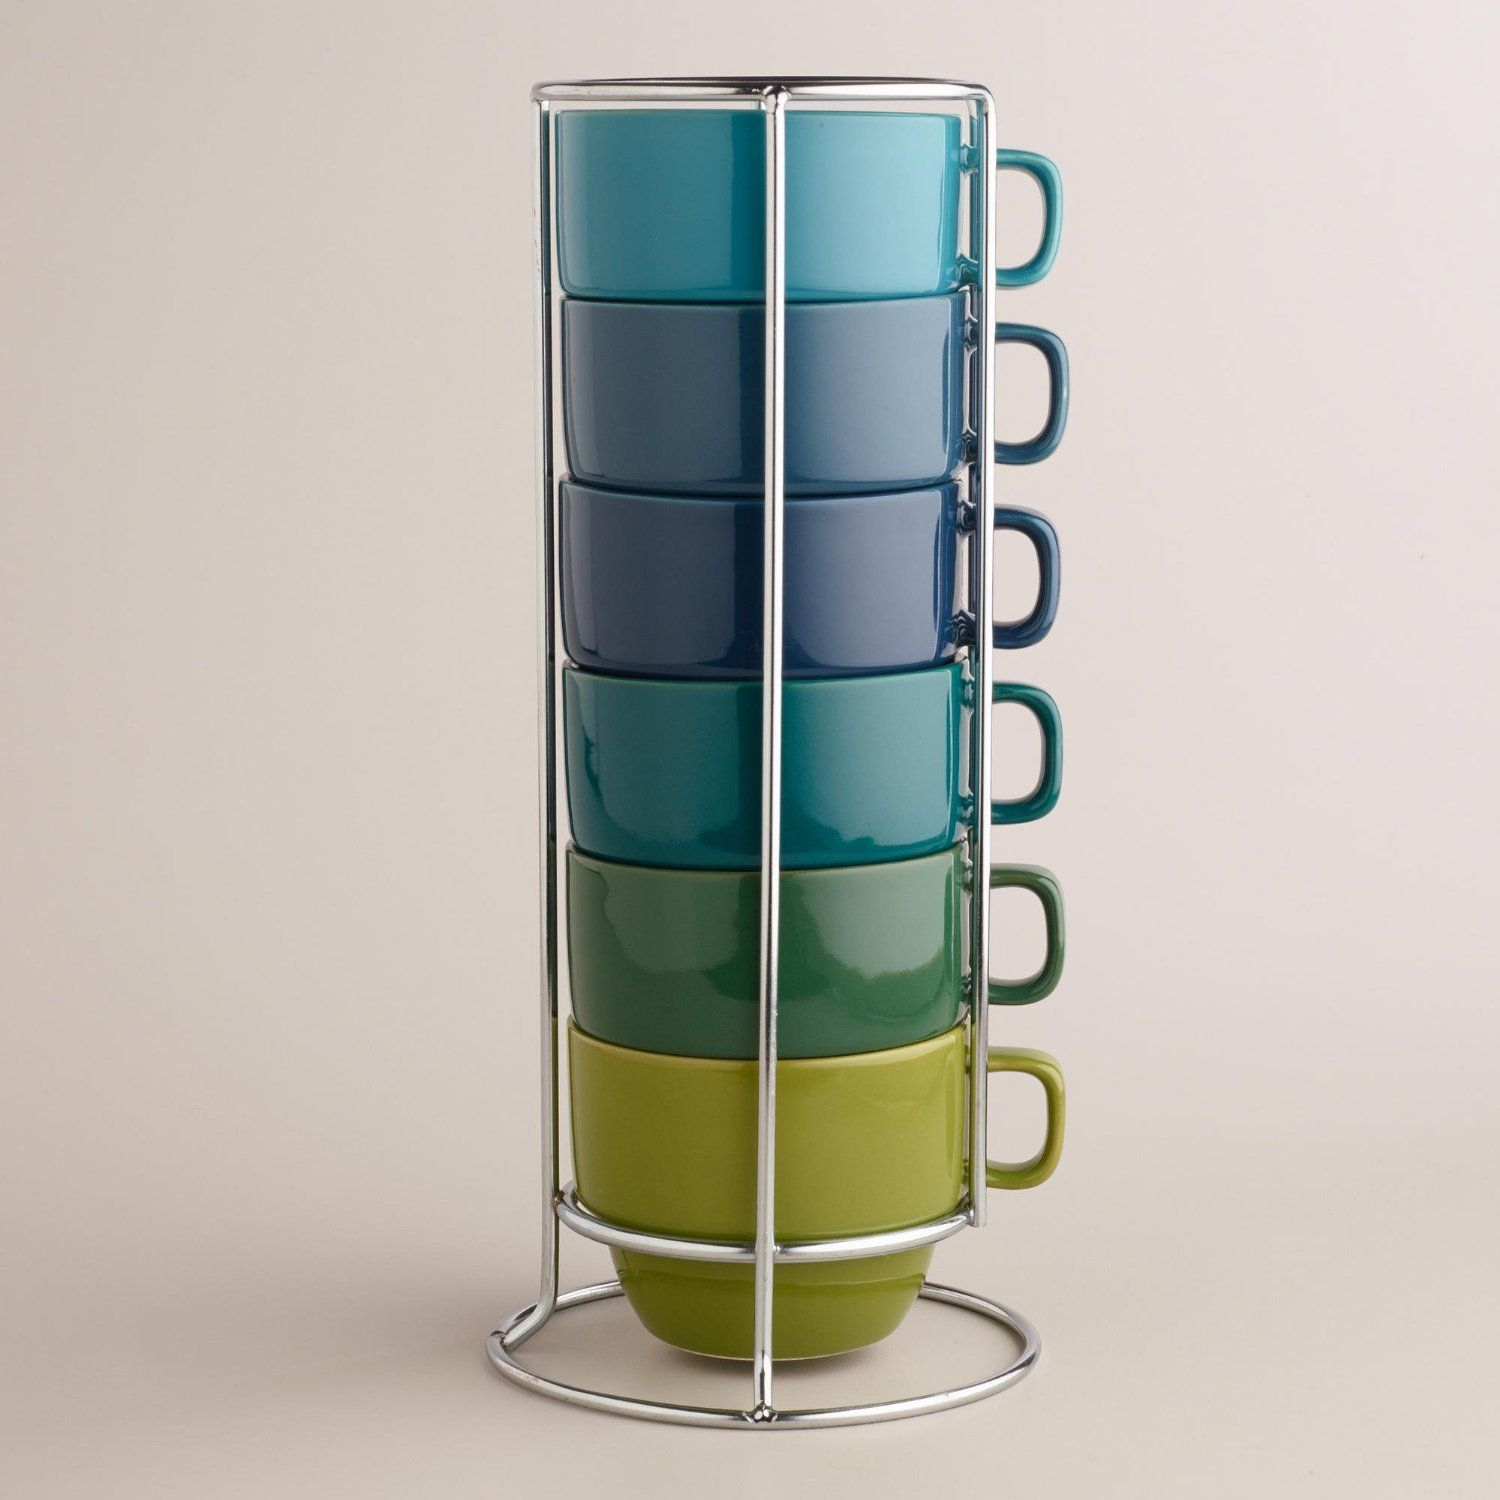 Space Saving Stacking Mugs are Attractive and Practical